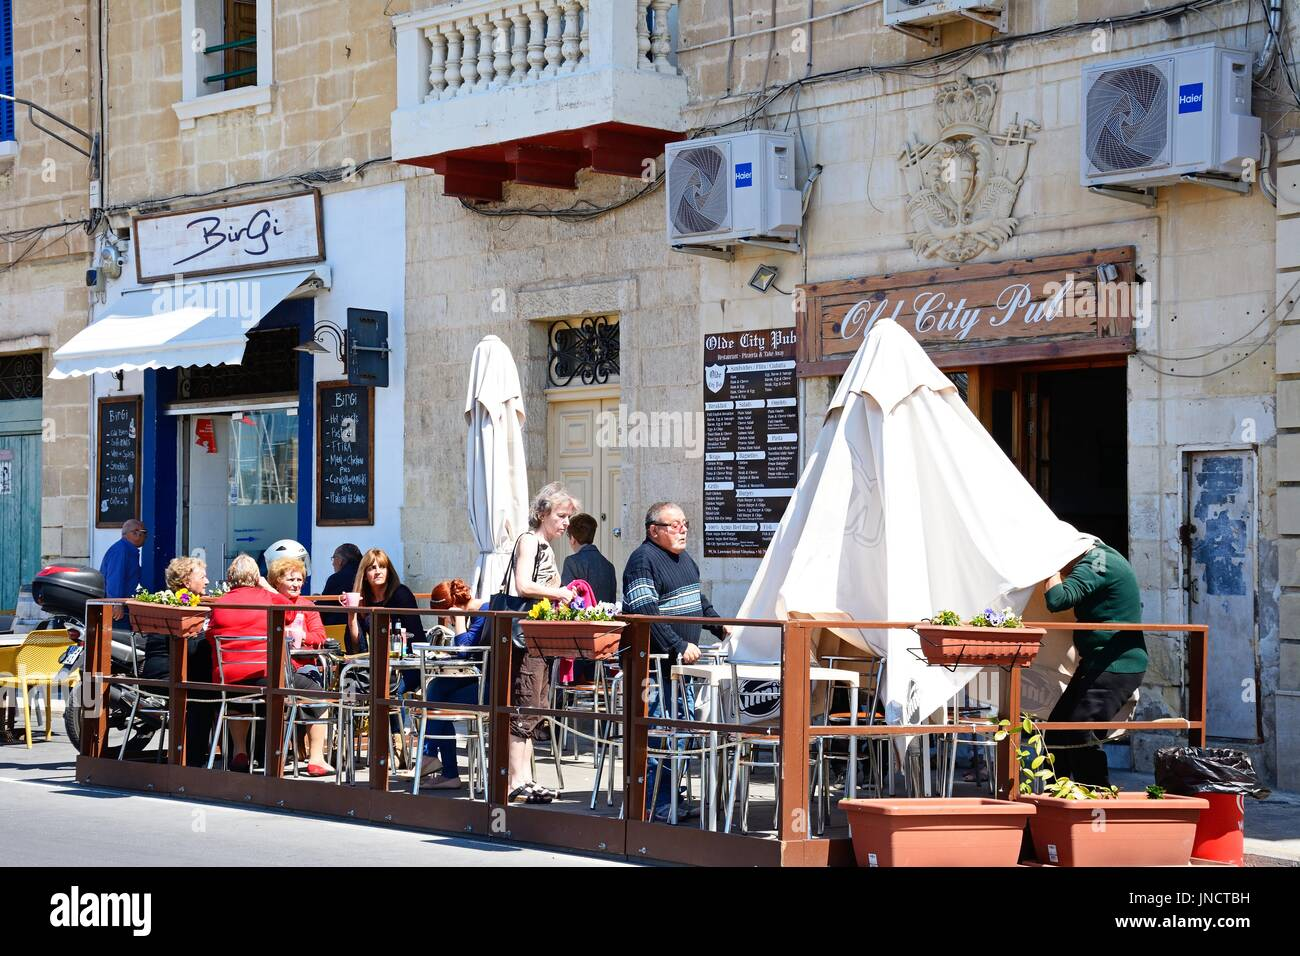 Tourists relaxing at a pavement cafe along the waterfront, Vittoriosa (Birgu), Malta, Europe. - Stock Image